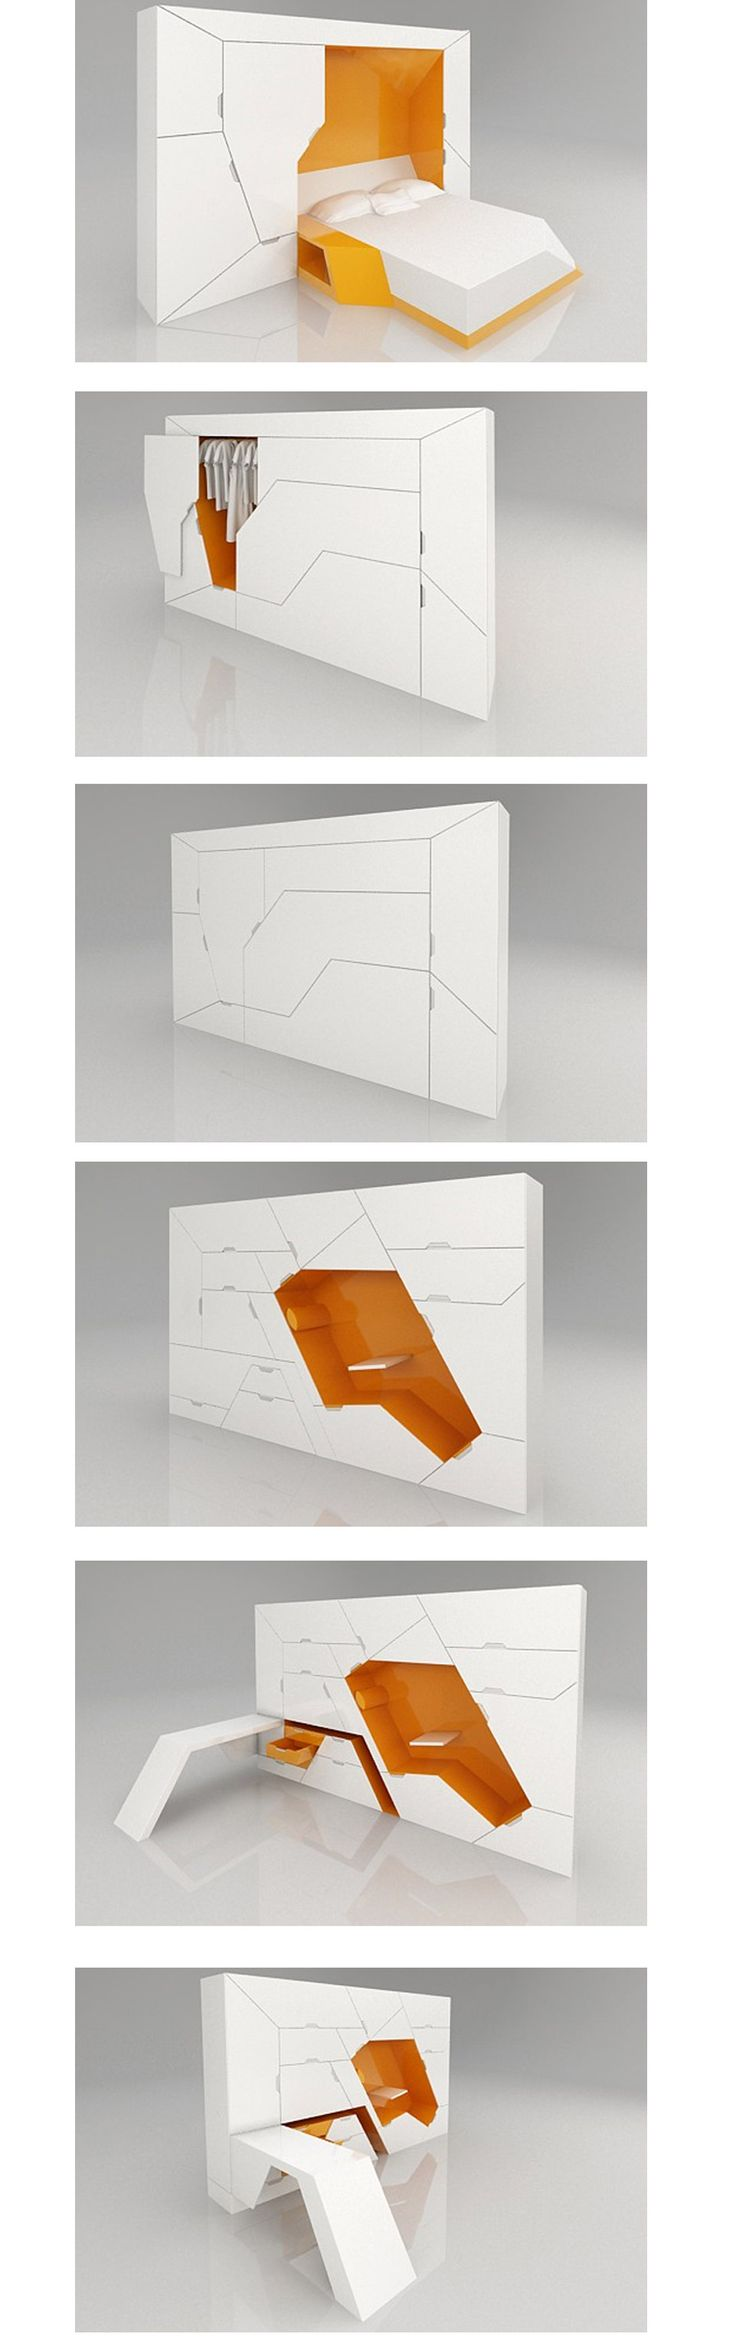 So clever! Minimalistic to the enth degree!